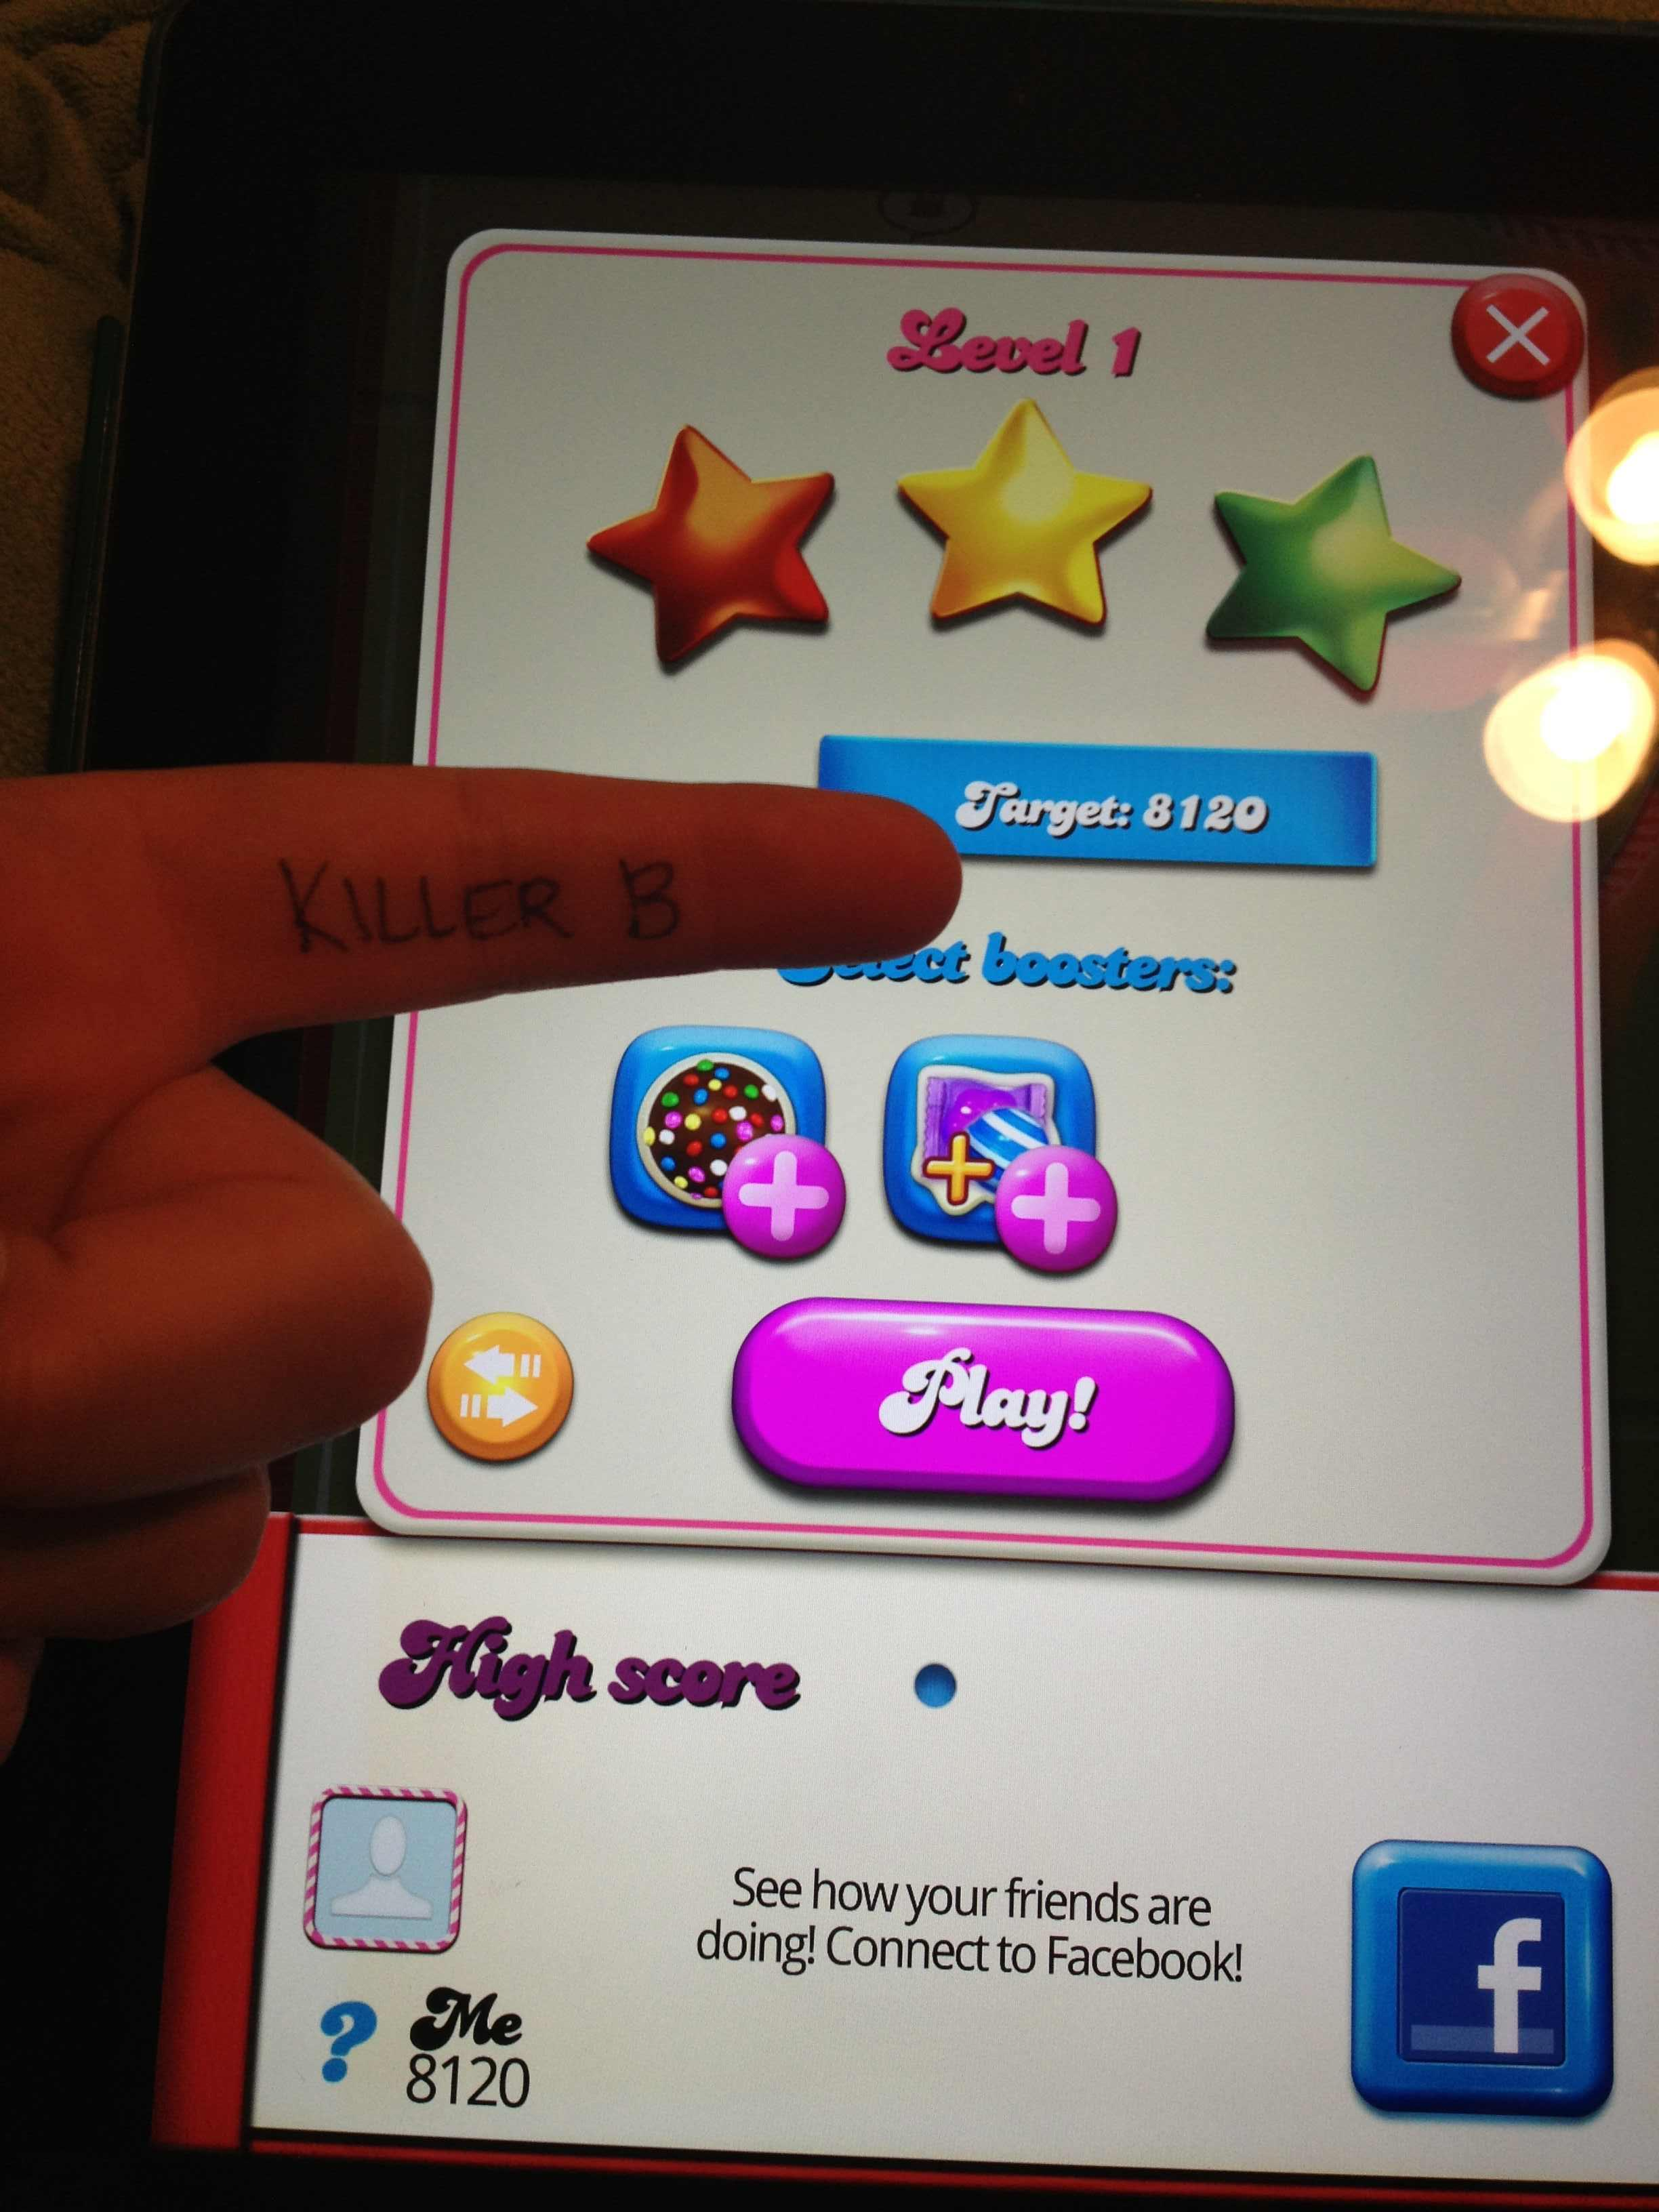 KillerB: Candy Crush Saga: Level 001 (iOS) 8,120 points on 2013-10-11 21:17:17